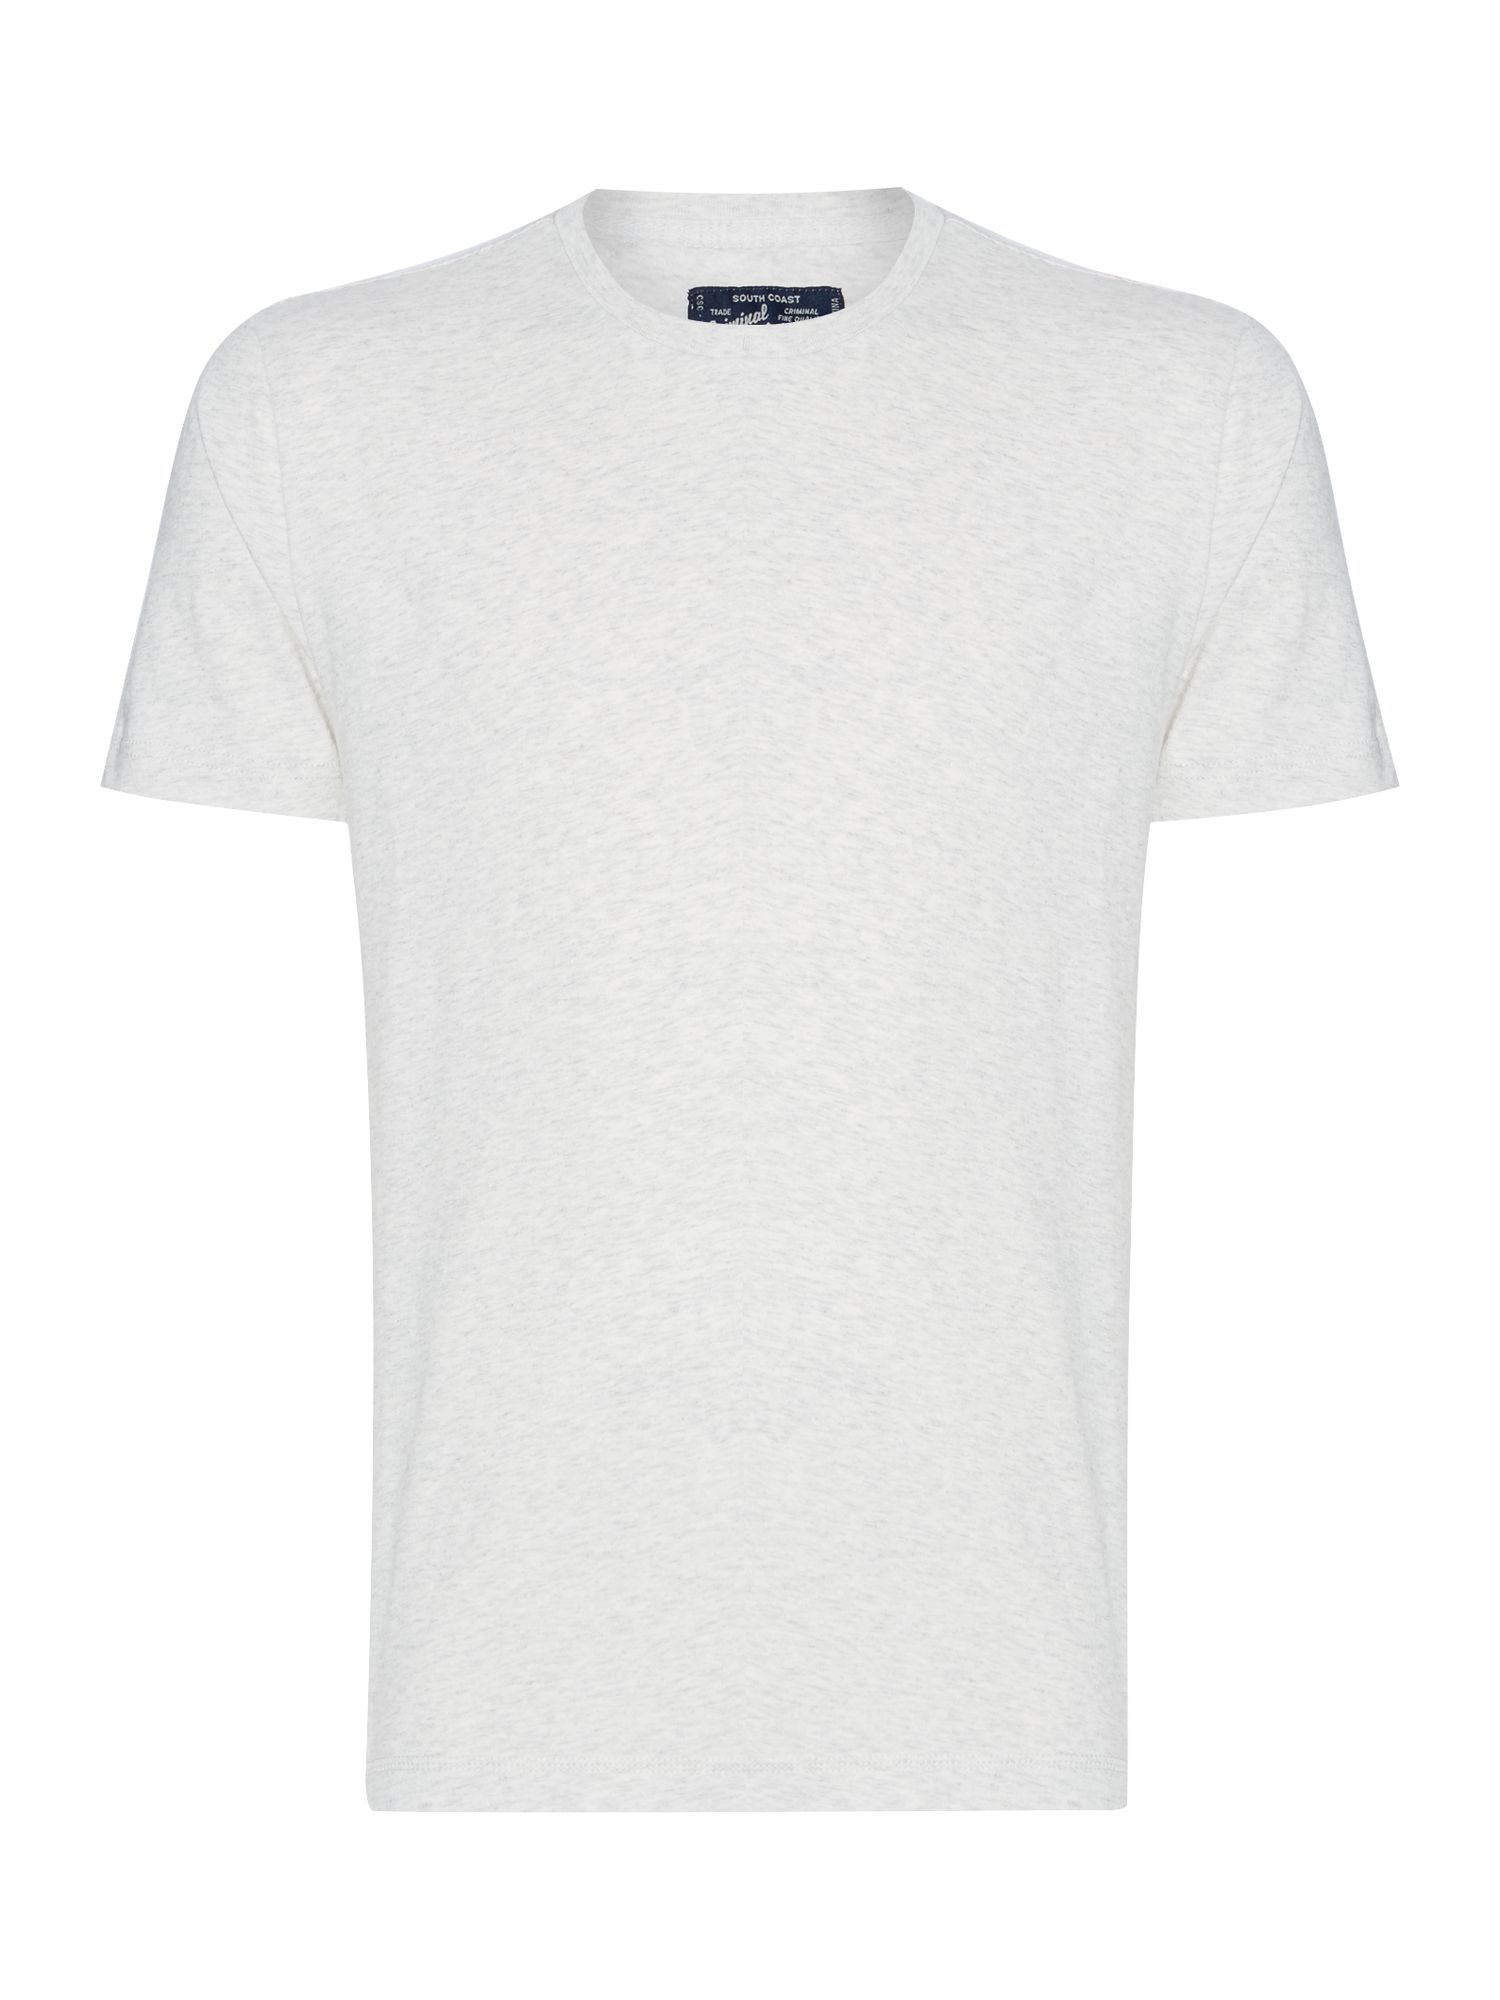 Harlem plain t shirt